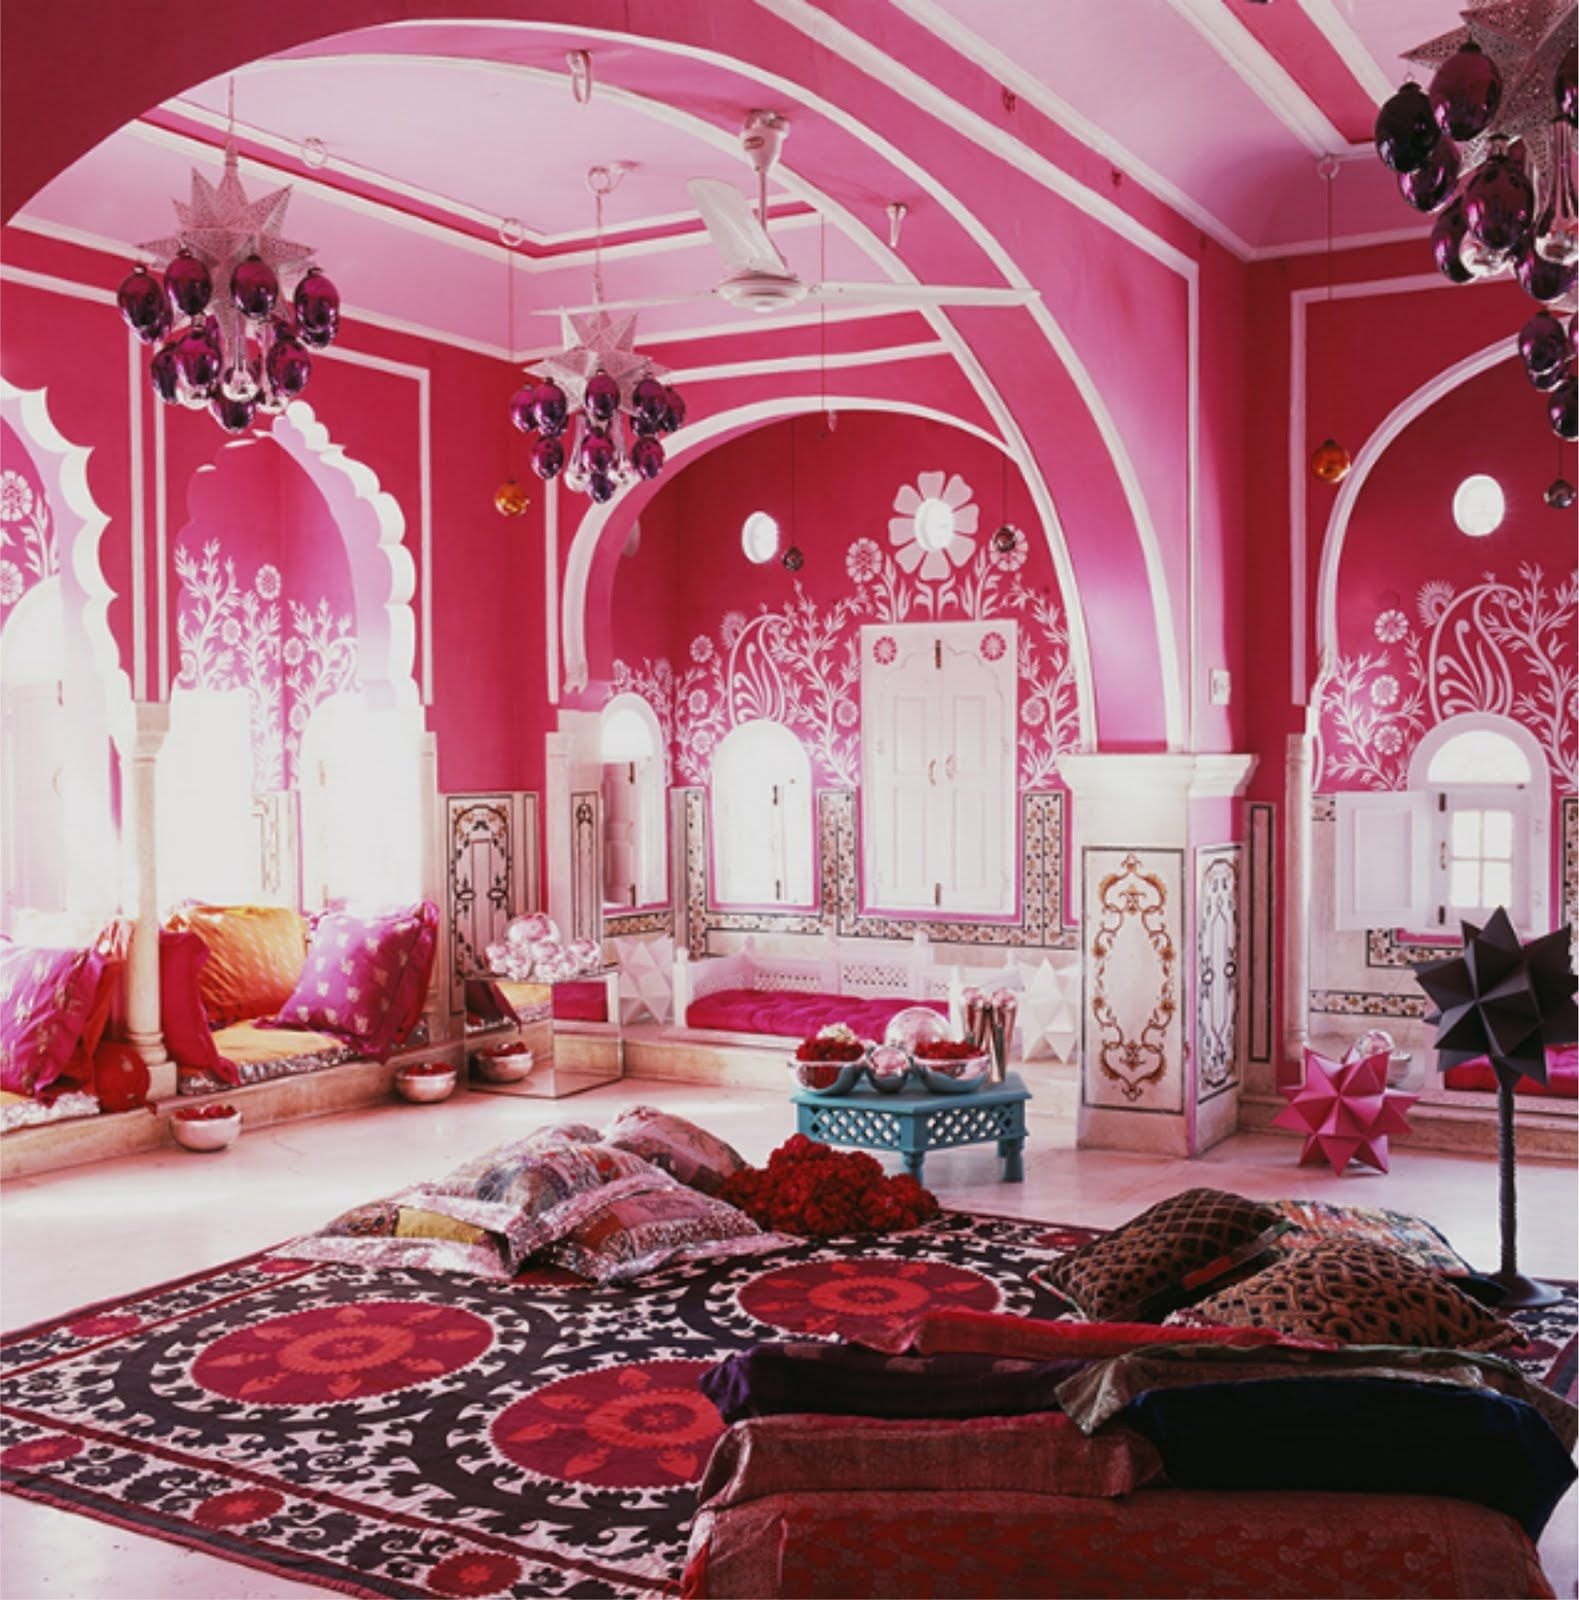 17 best images about moroccan room on pinterest genie bottle bedroom ideas and modern moroccan moroccan inspired - Moroccan Design Ideas